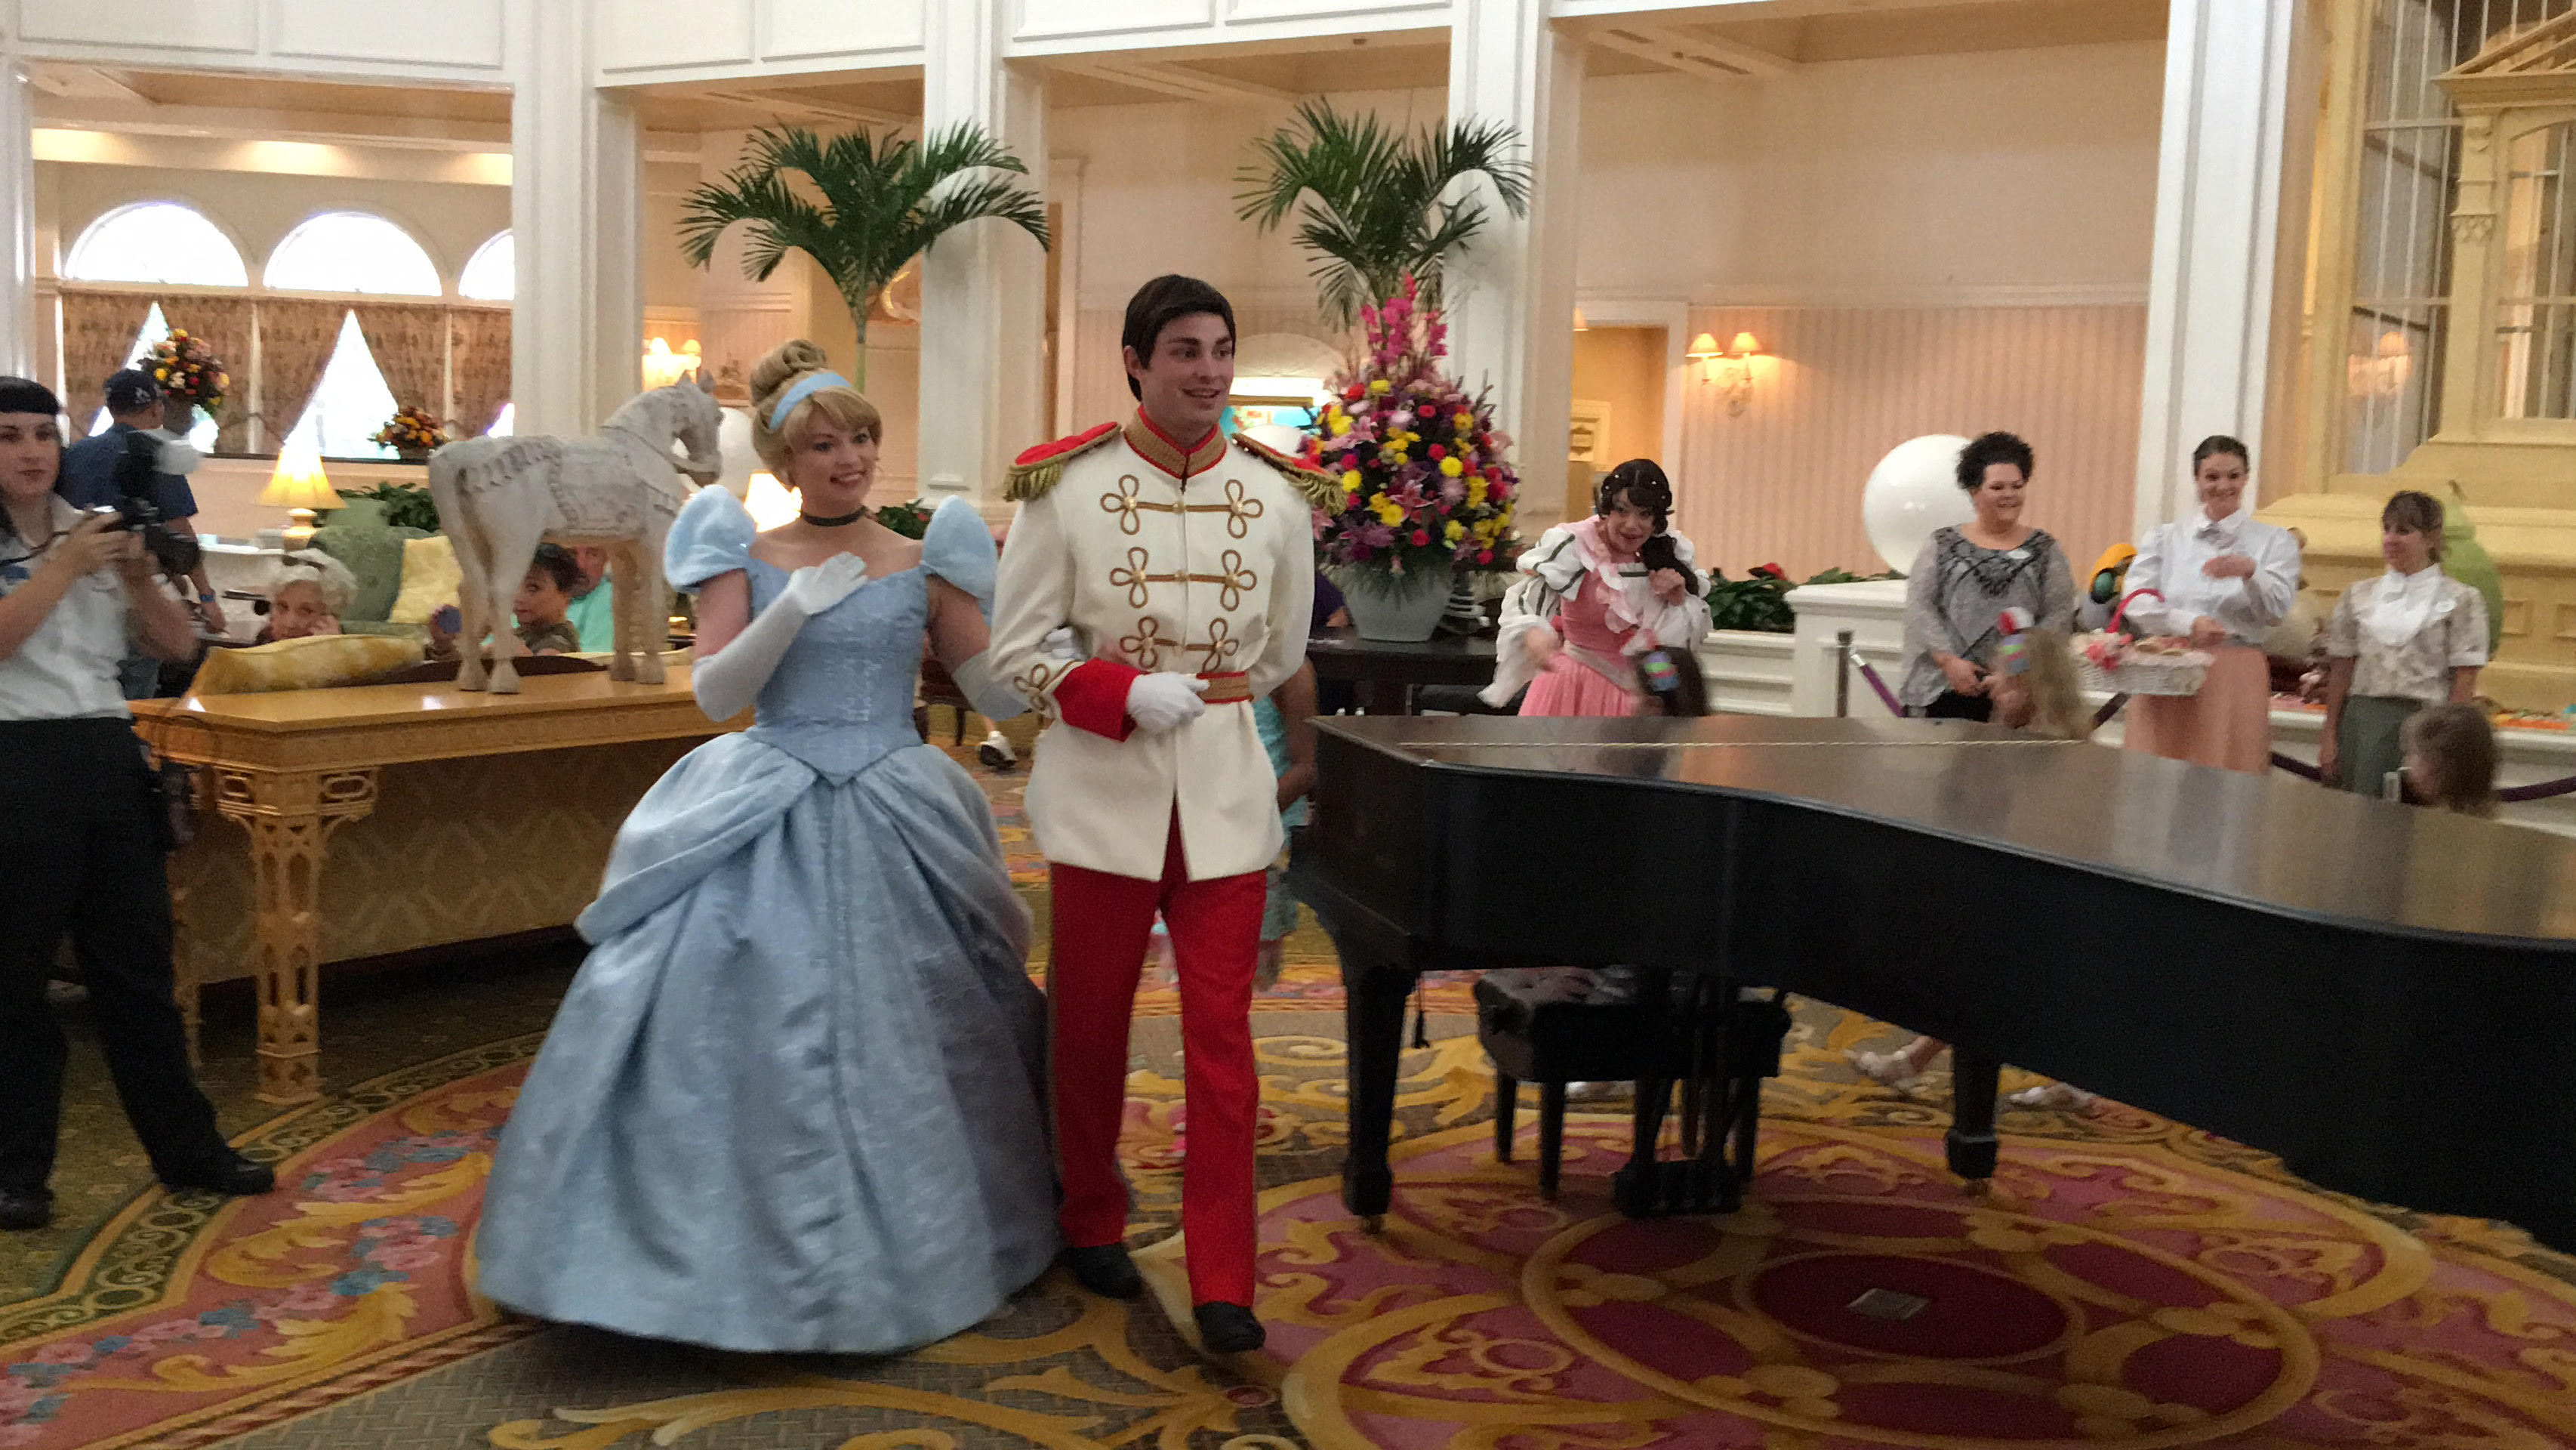 New Princess Promenade at Disney's Grand Floridian — An Event as Lovely as Its Name